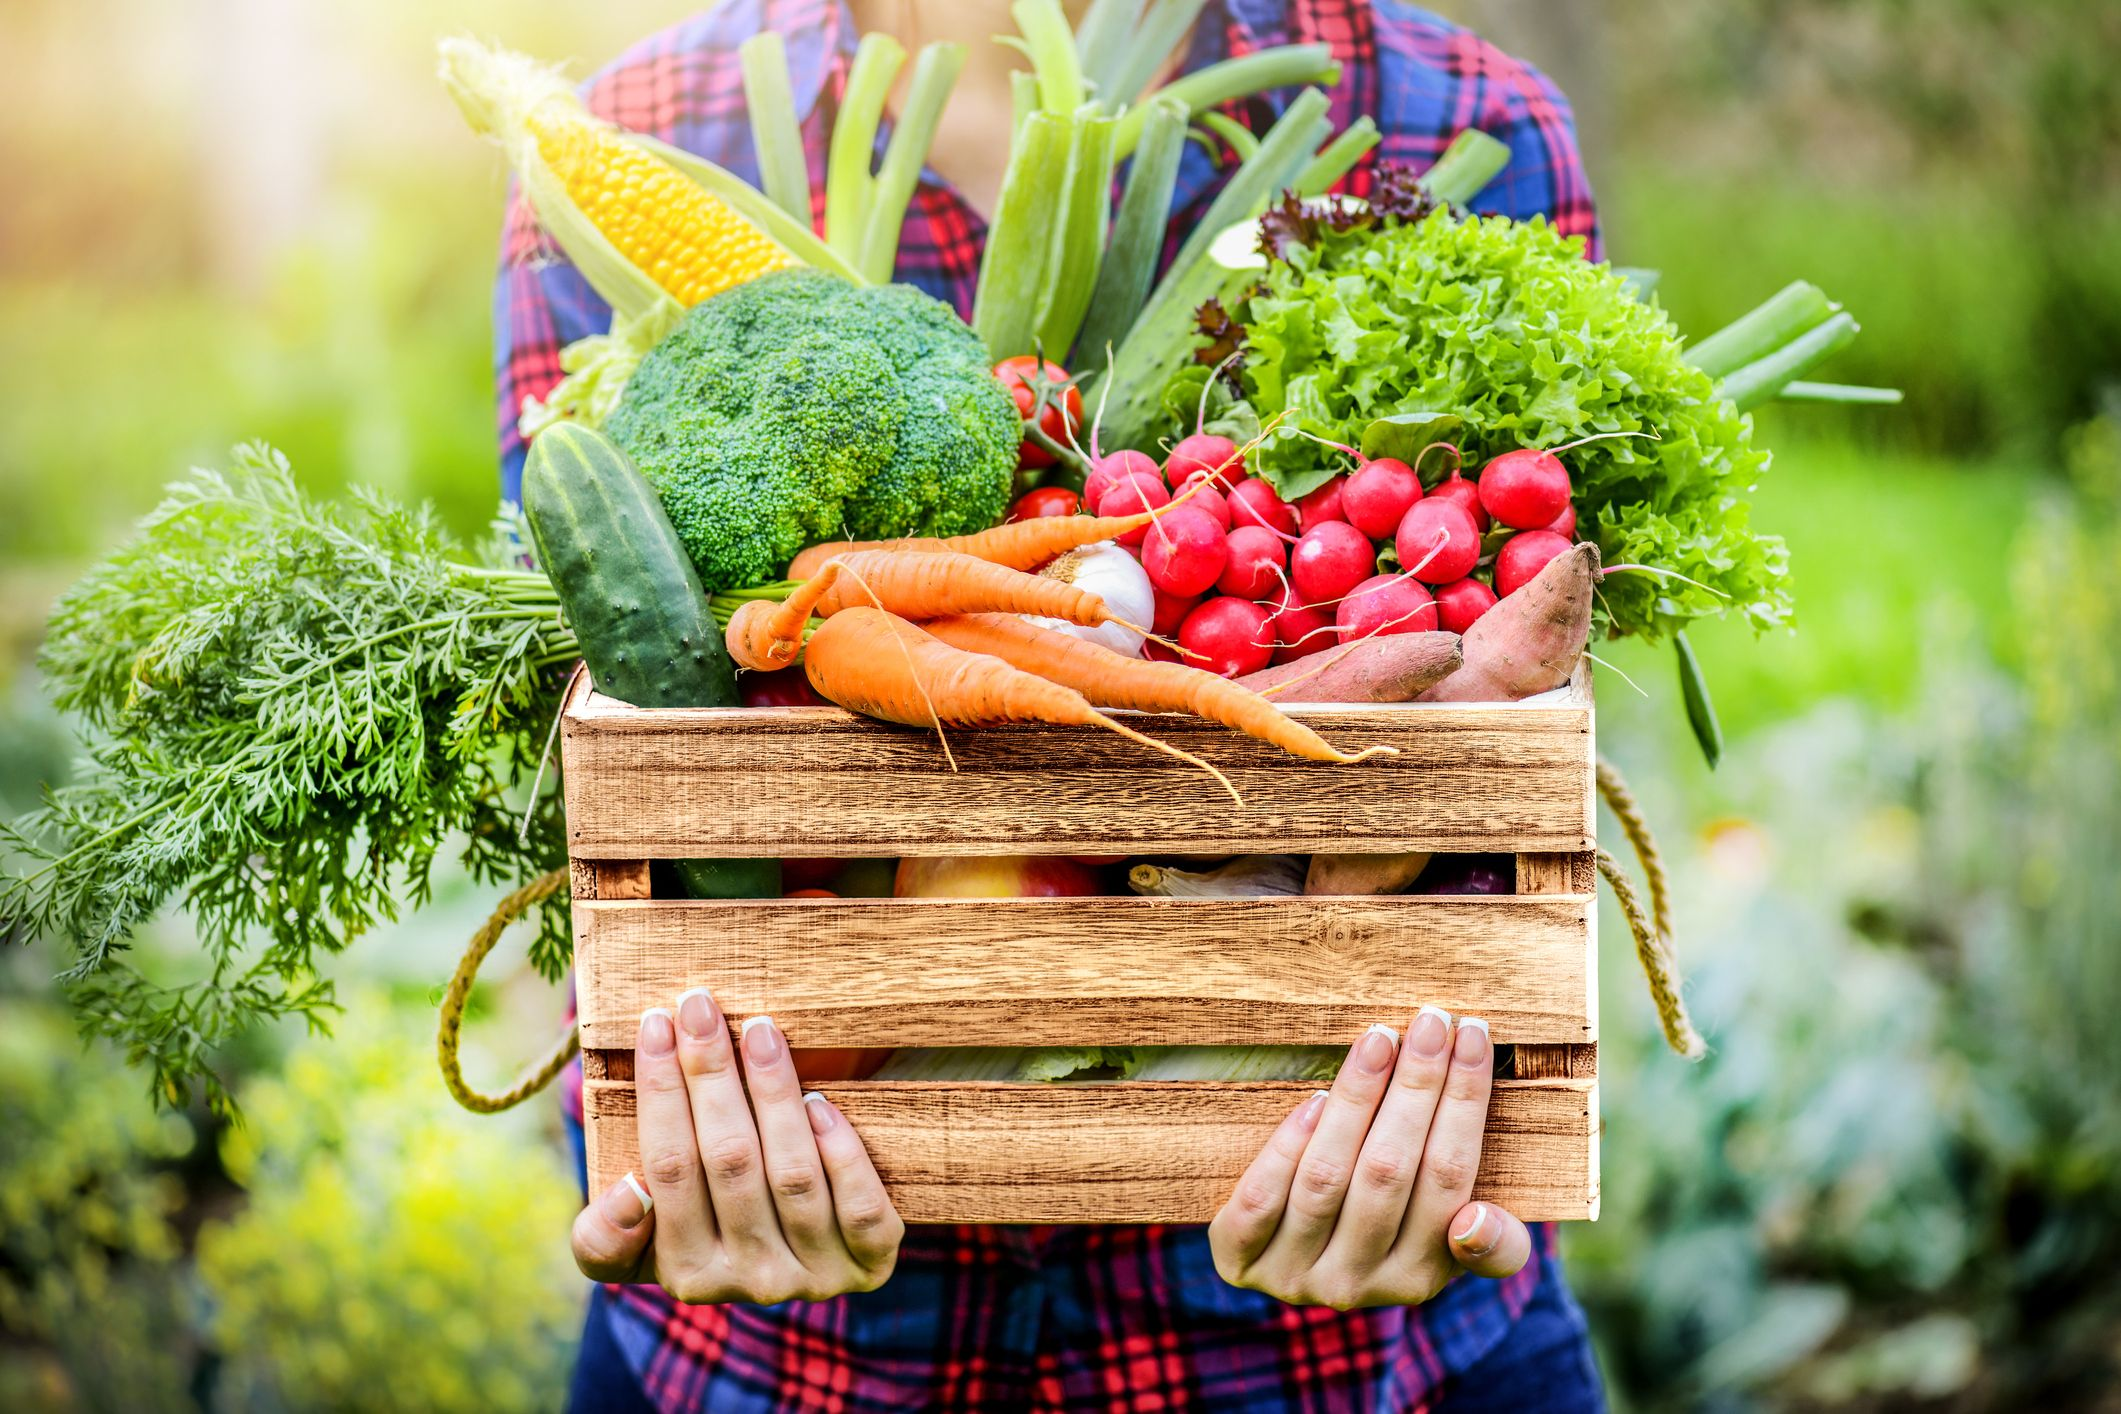 From Farm to Table: Where does food come from?